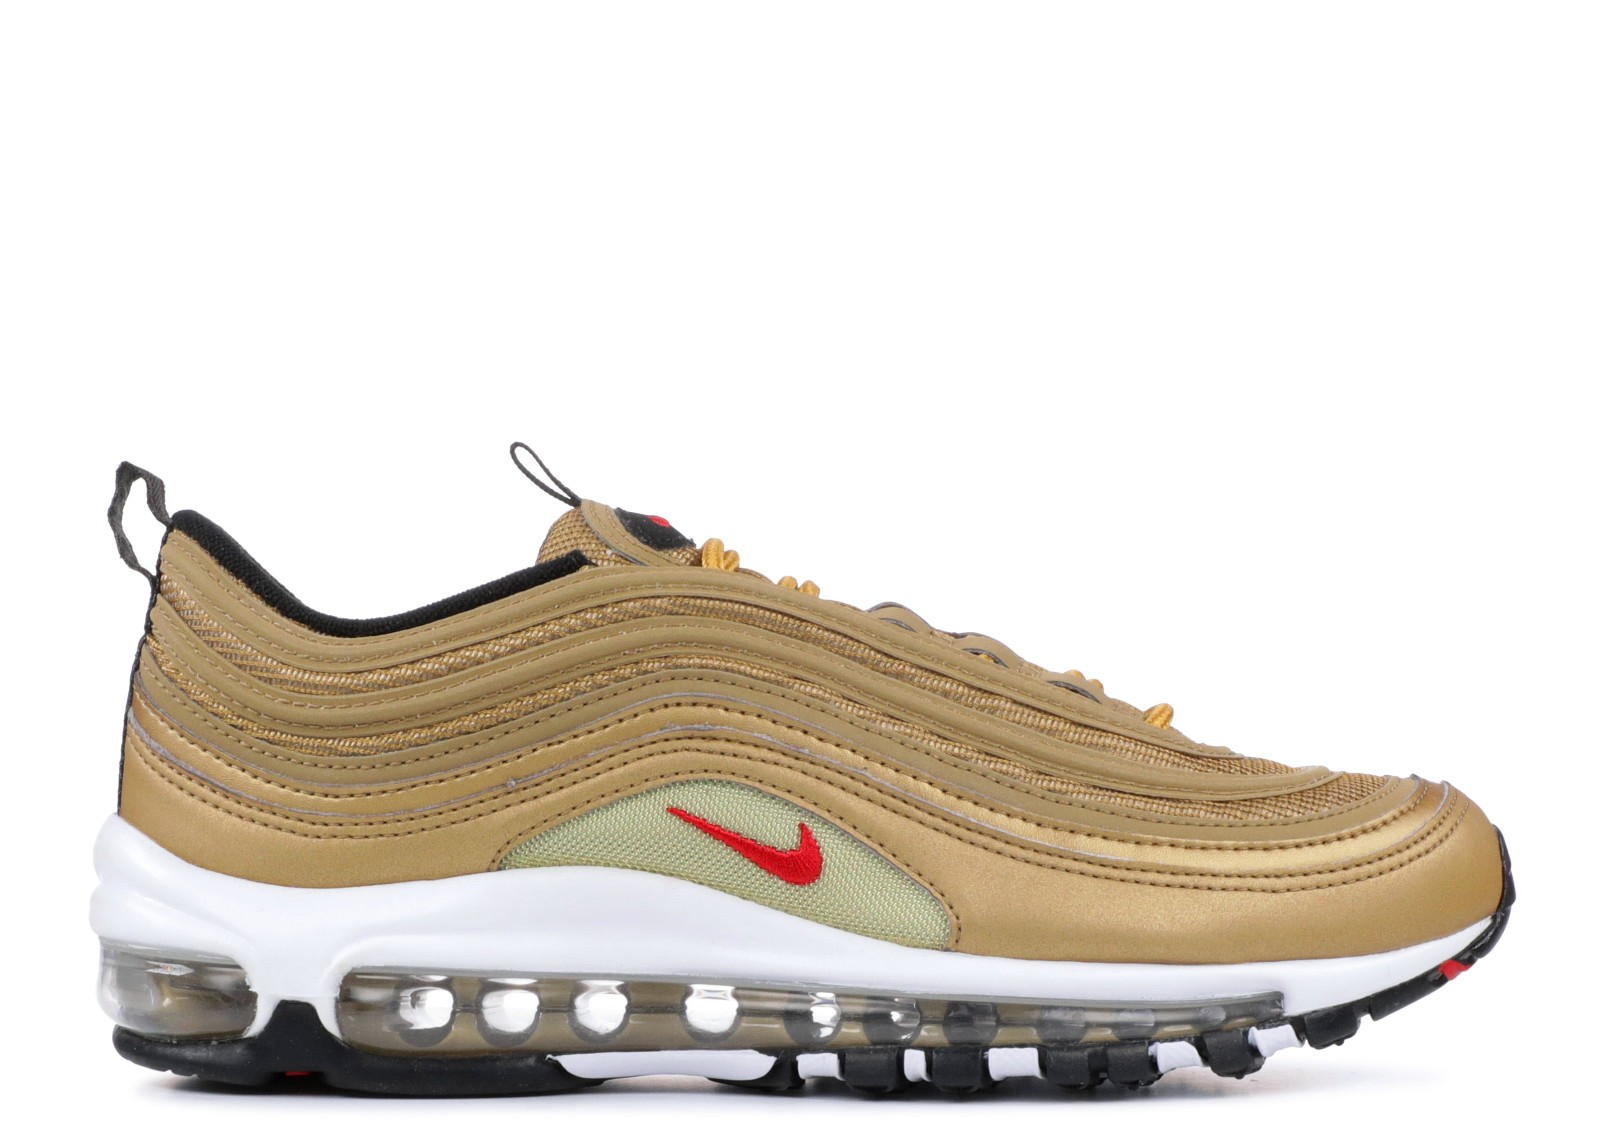 Nike Air Max 97 QS Femme Metallic Gold/Rouge 918890-700